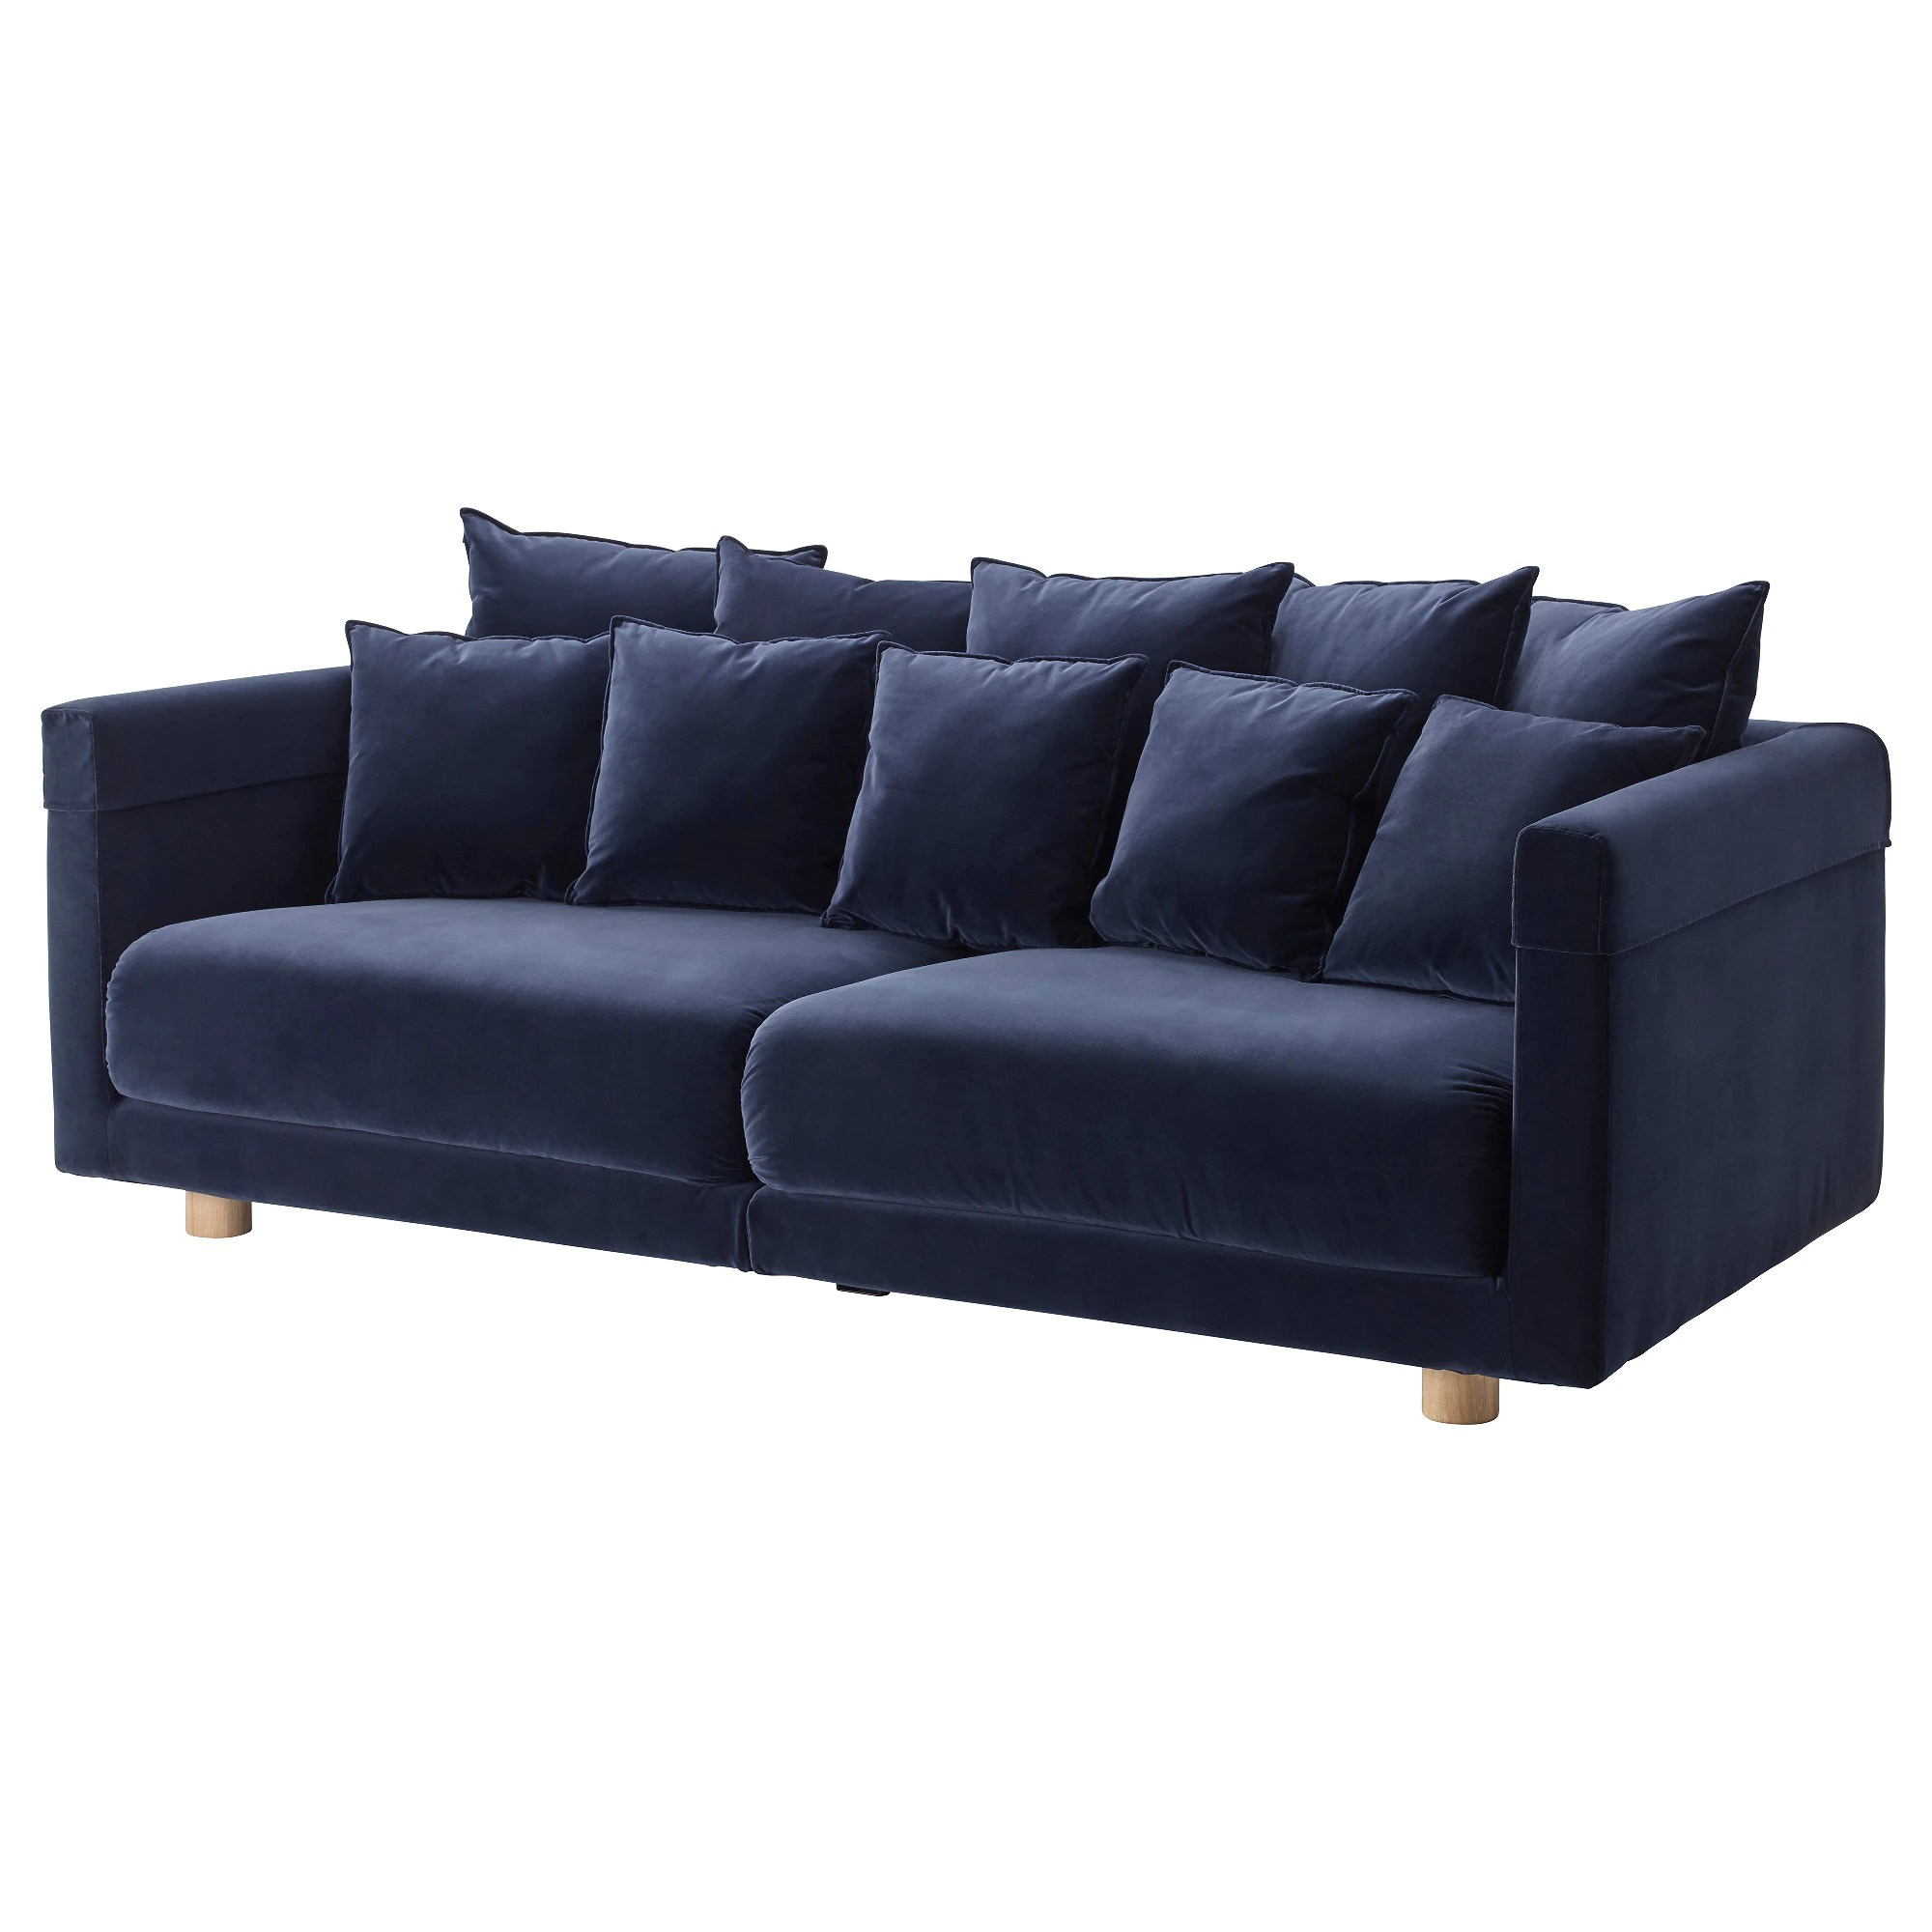 Made Sofa Shop Sofa Stockholm 2017 Sandbacka Dark Blue